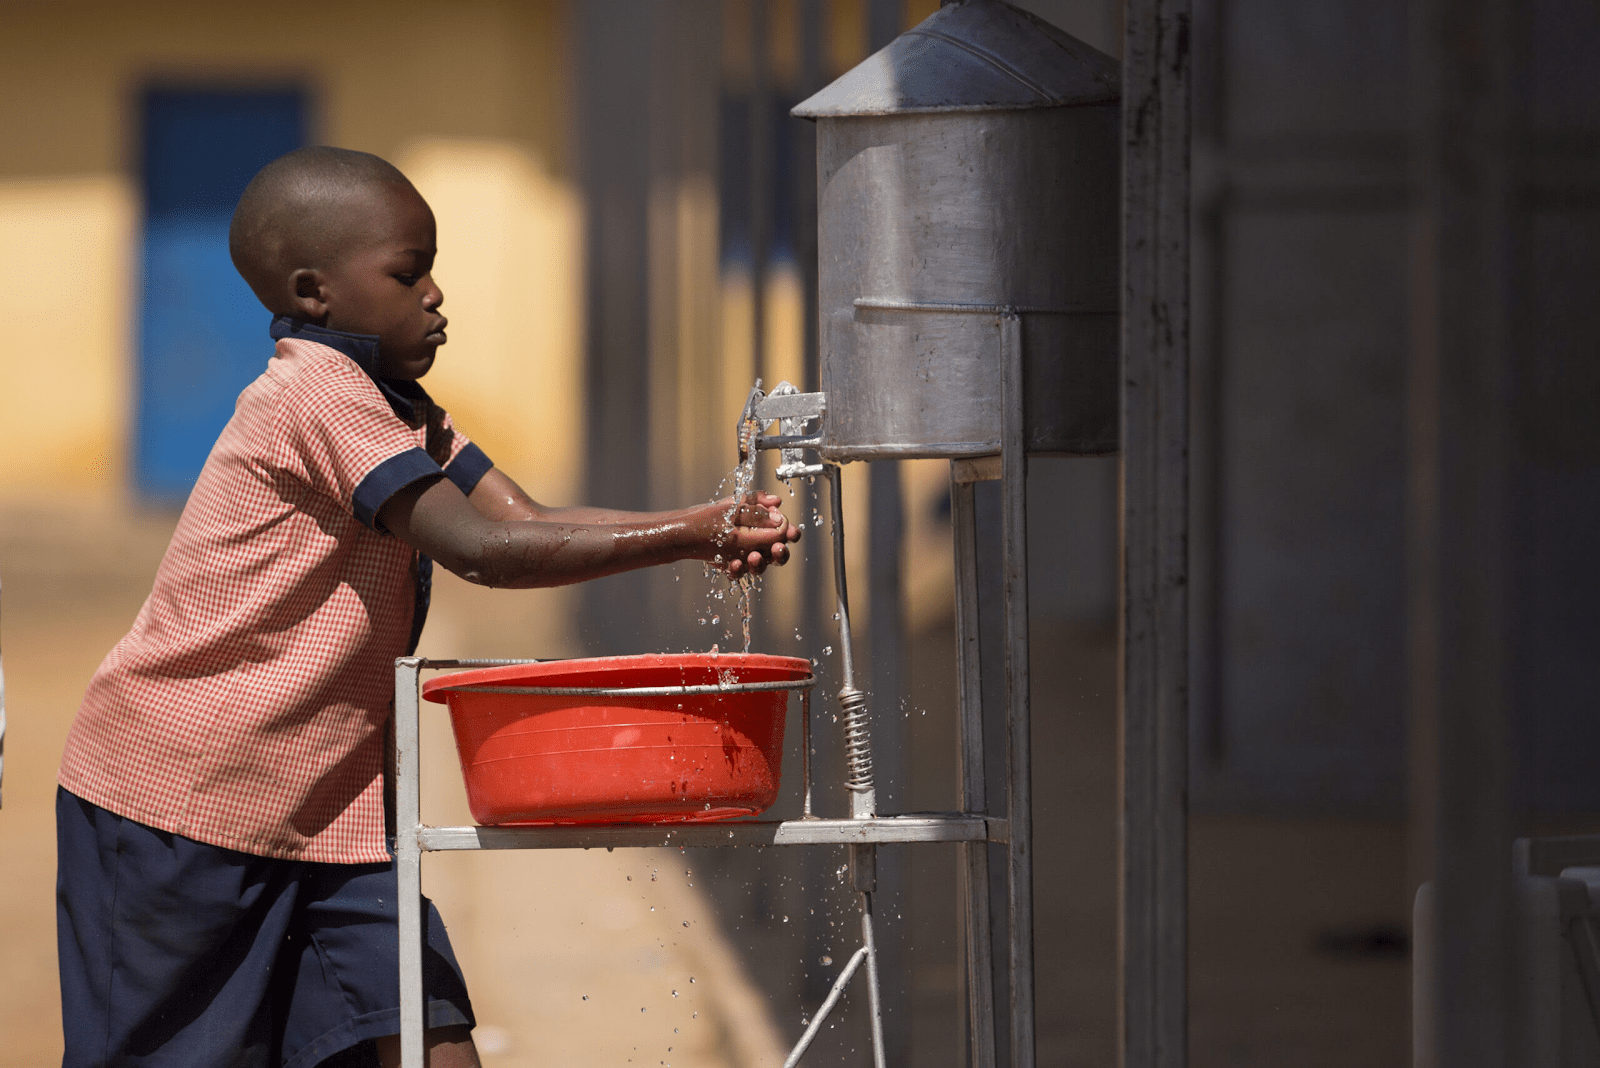 Investments in WASH programs and services: Rural communities in Africa